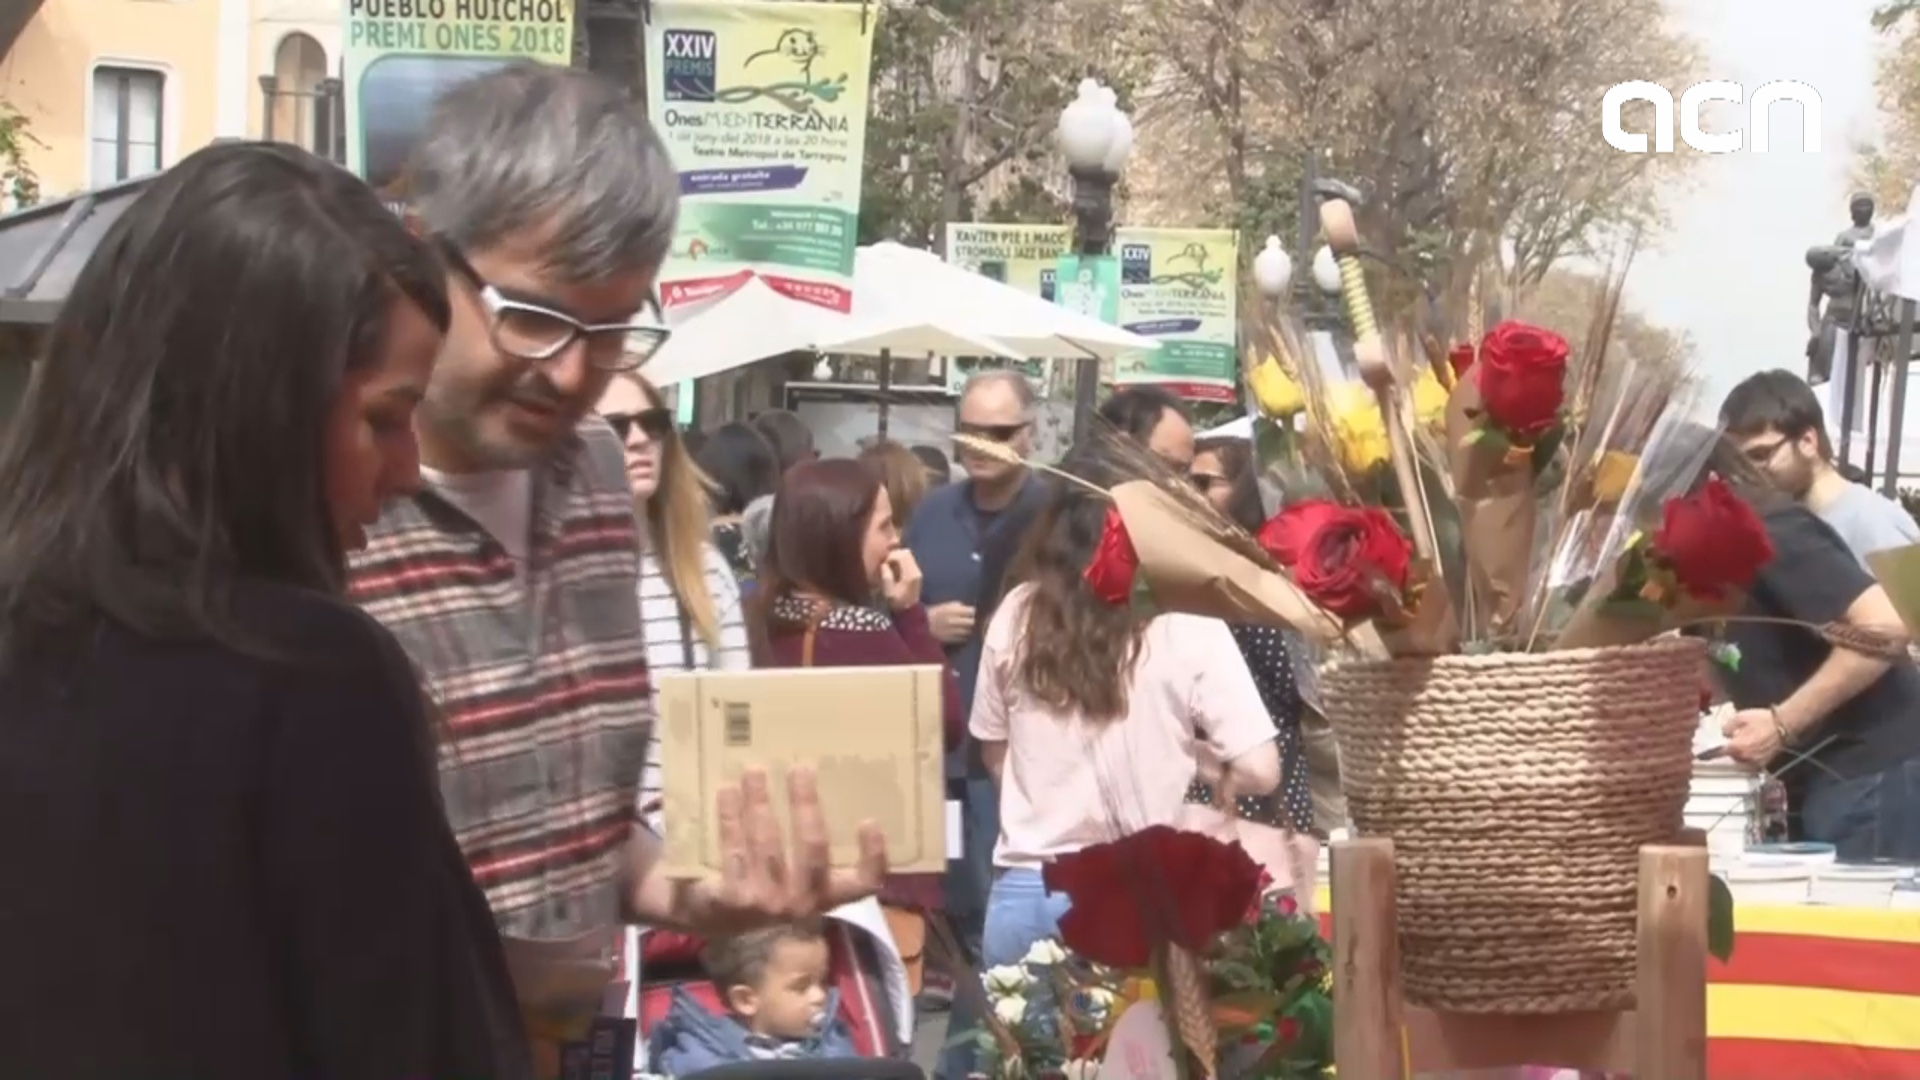 Love, books, roses and a festive atmosphere on Sant Jordi